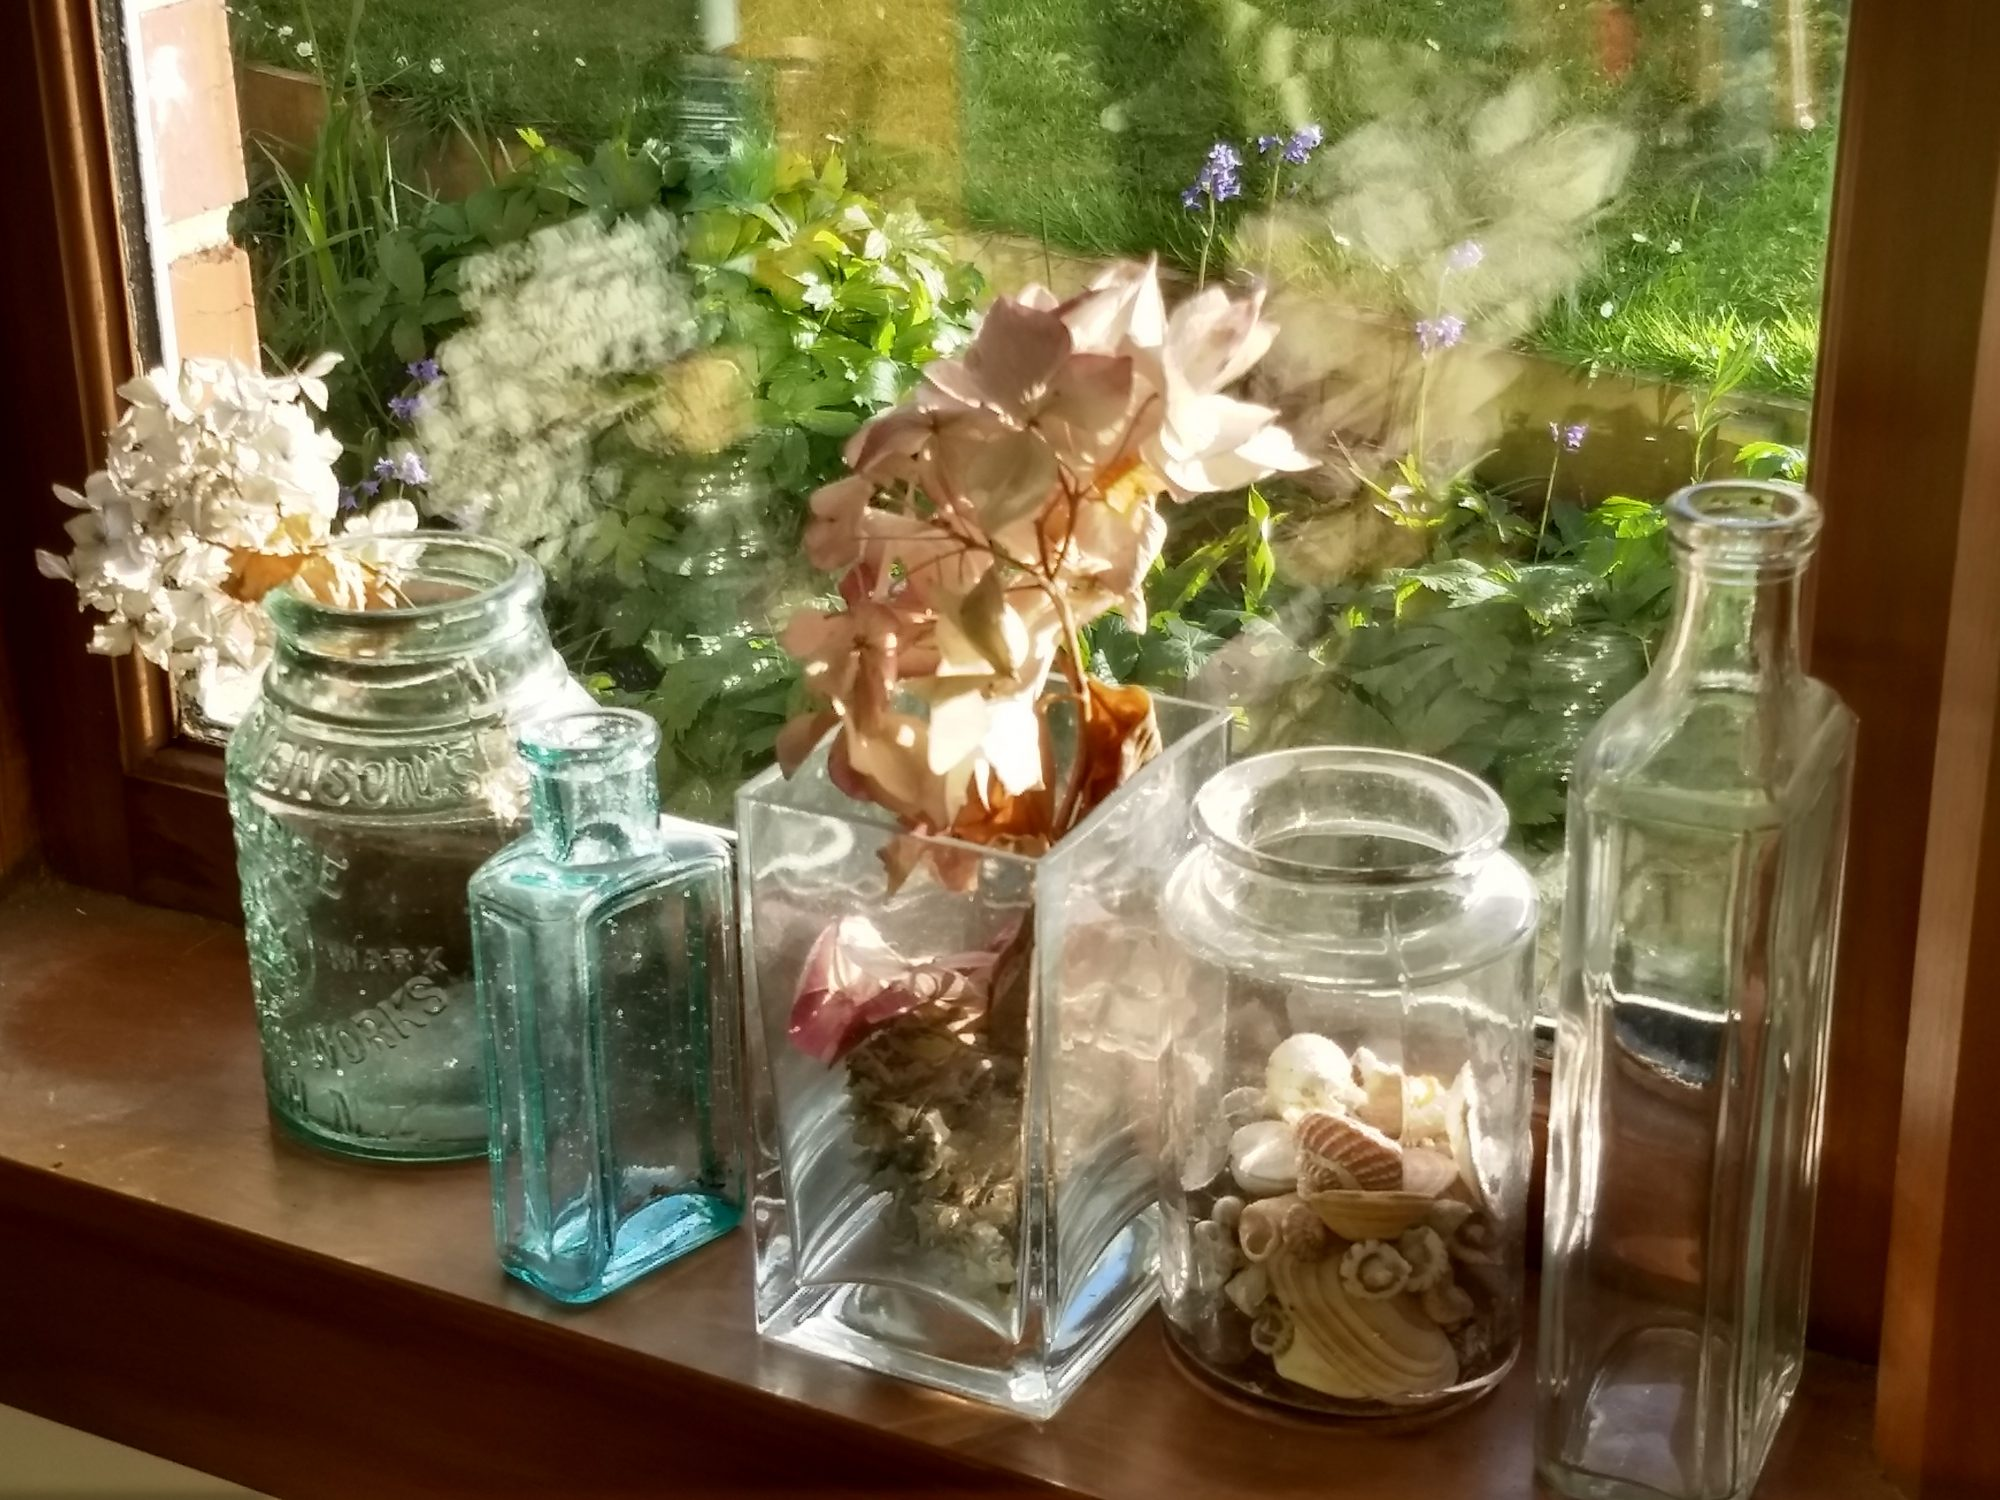 Dried Flowers by Window